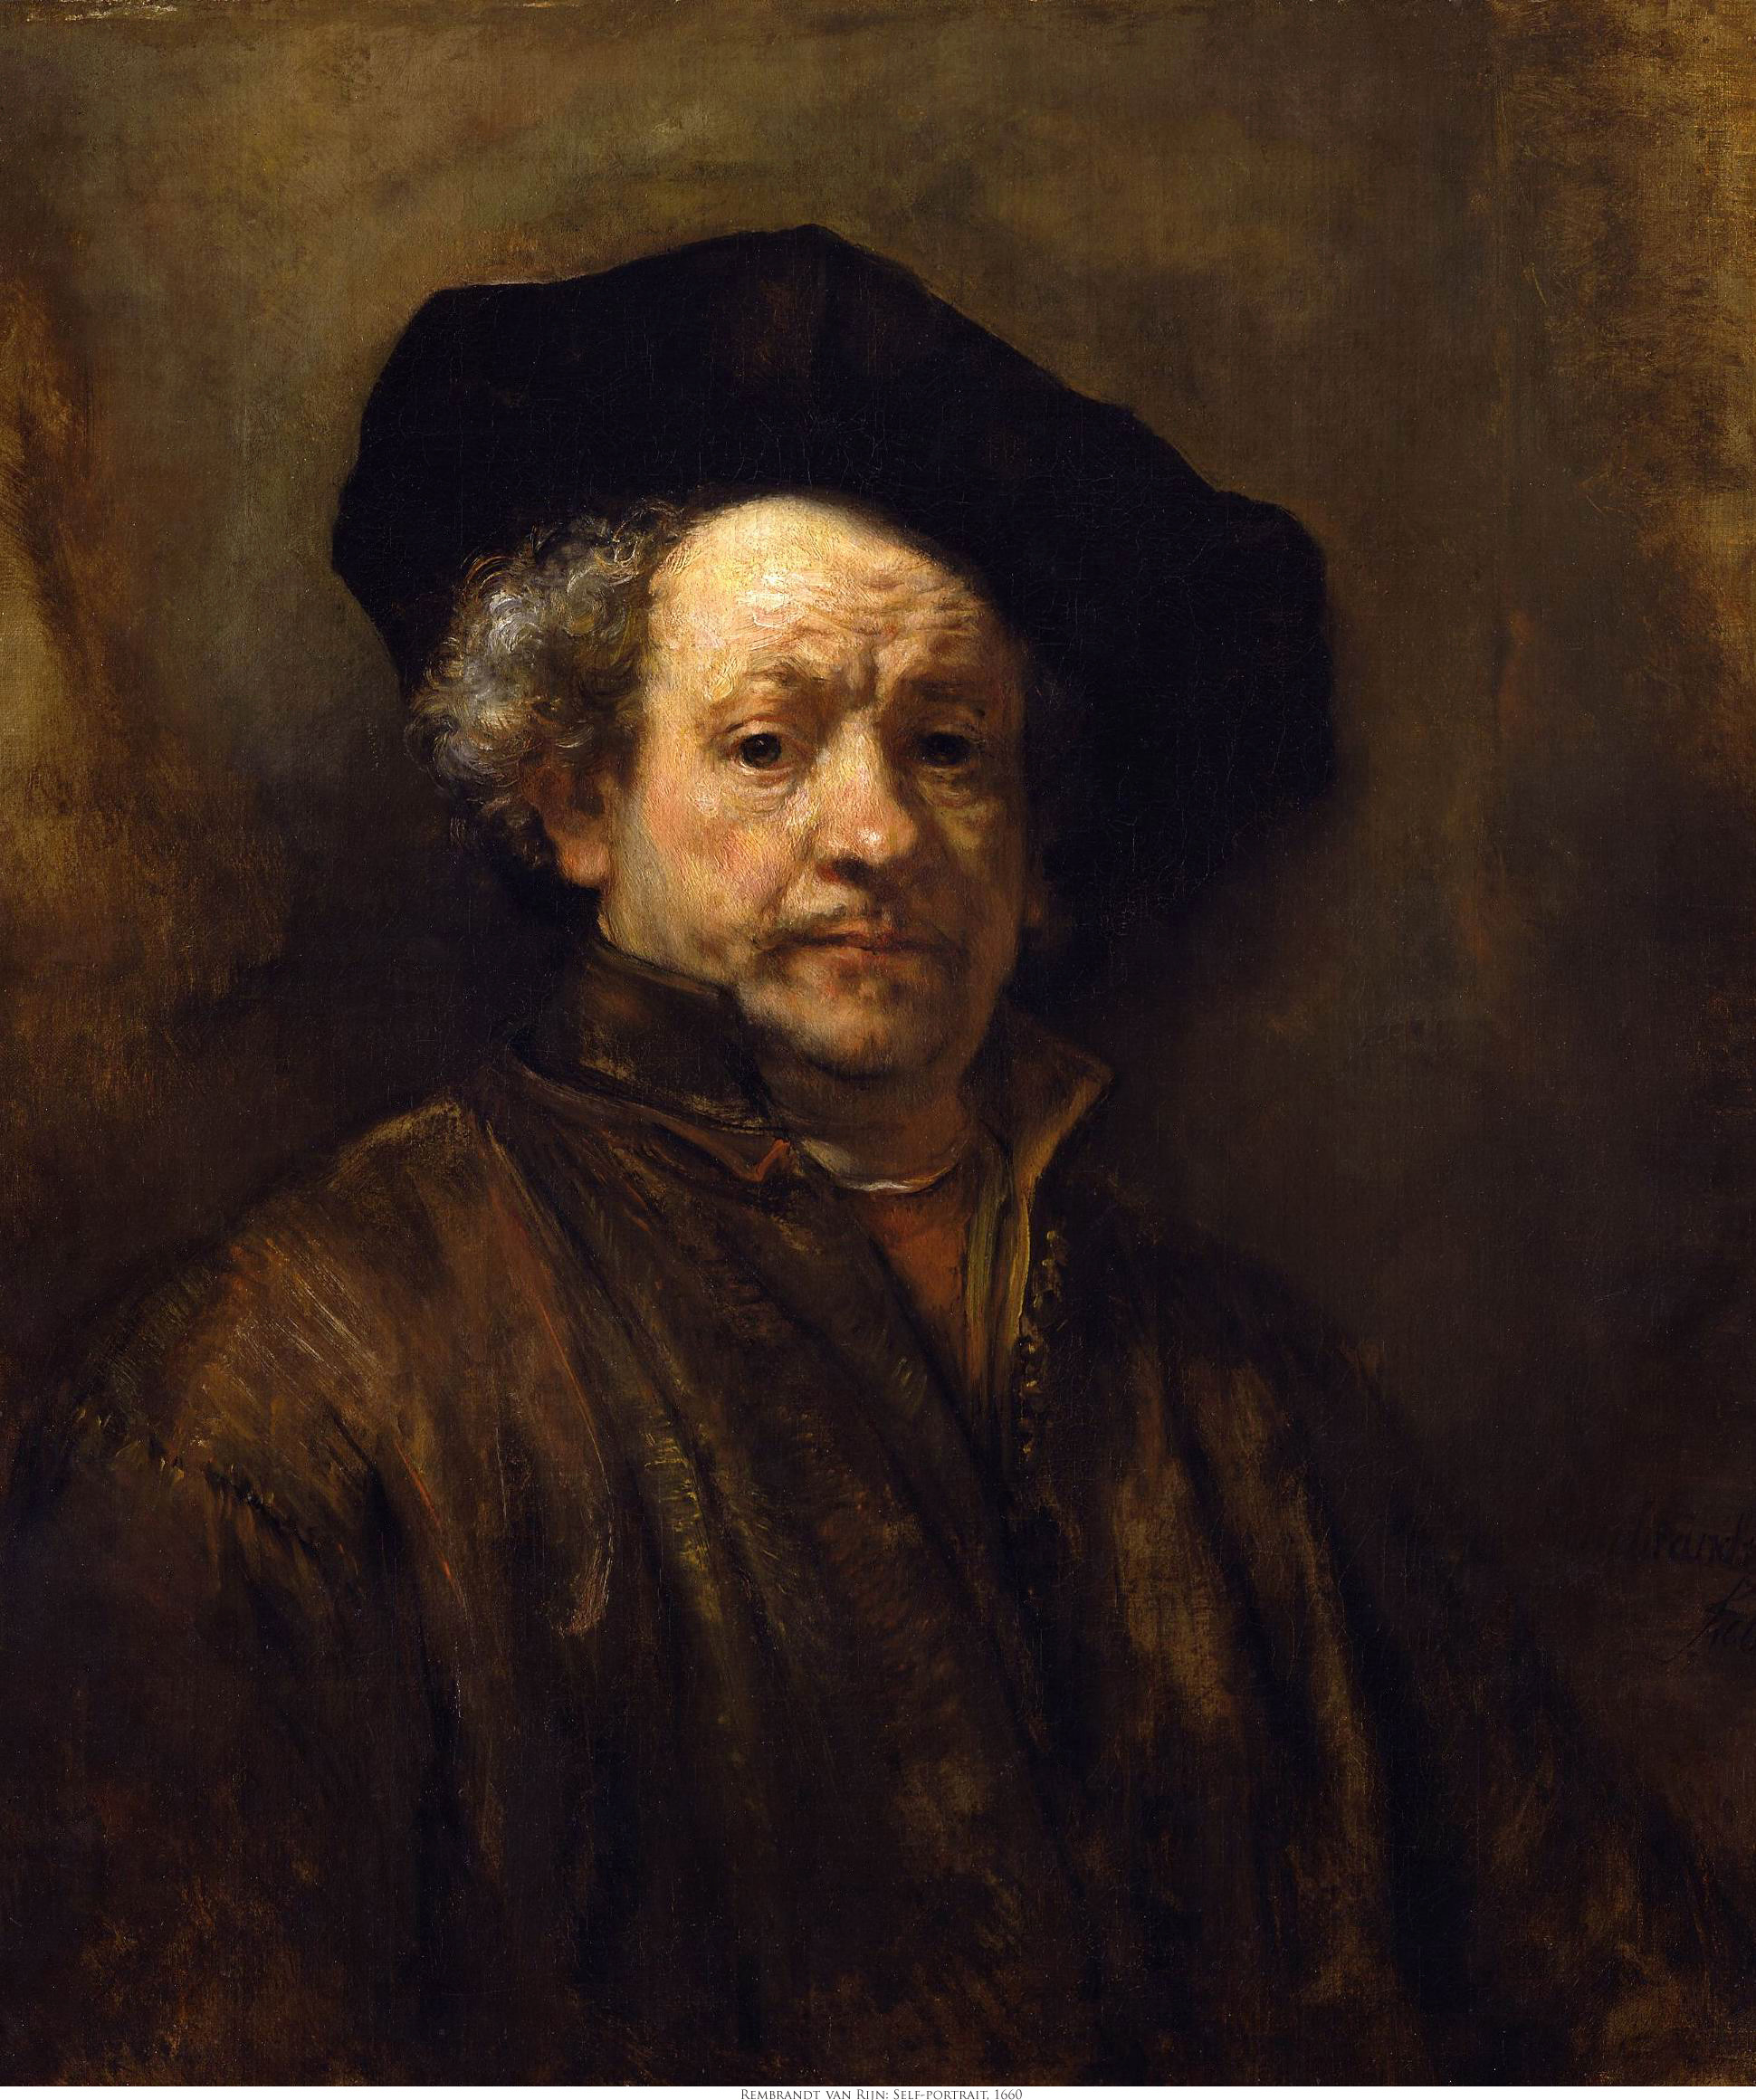 Some Masterpieces from the Public Domain, Rembrandt Daystar